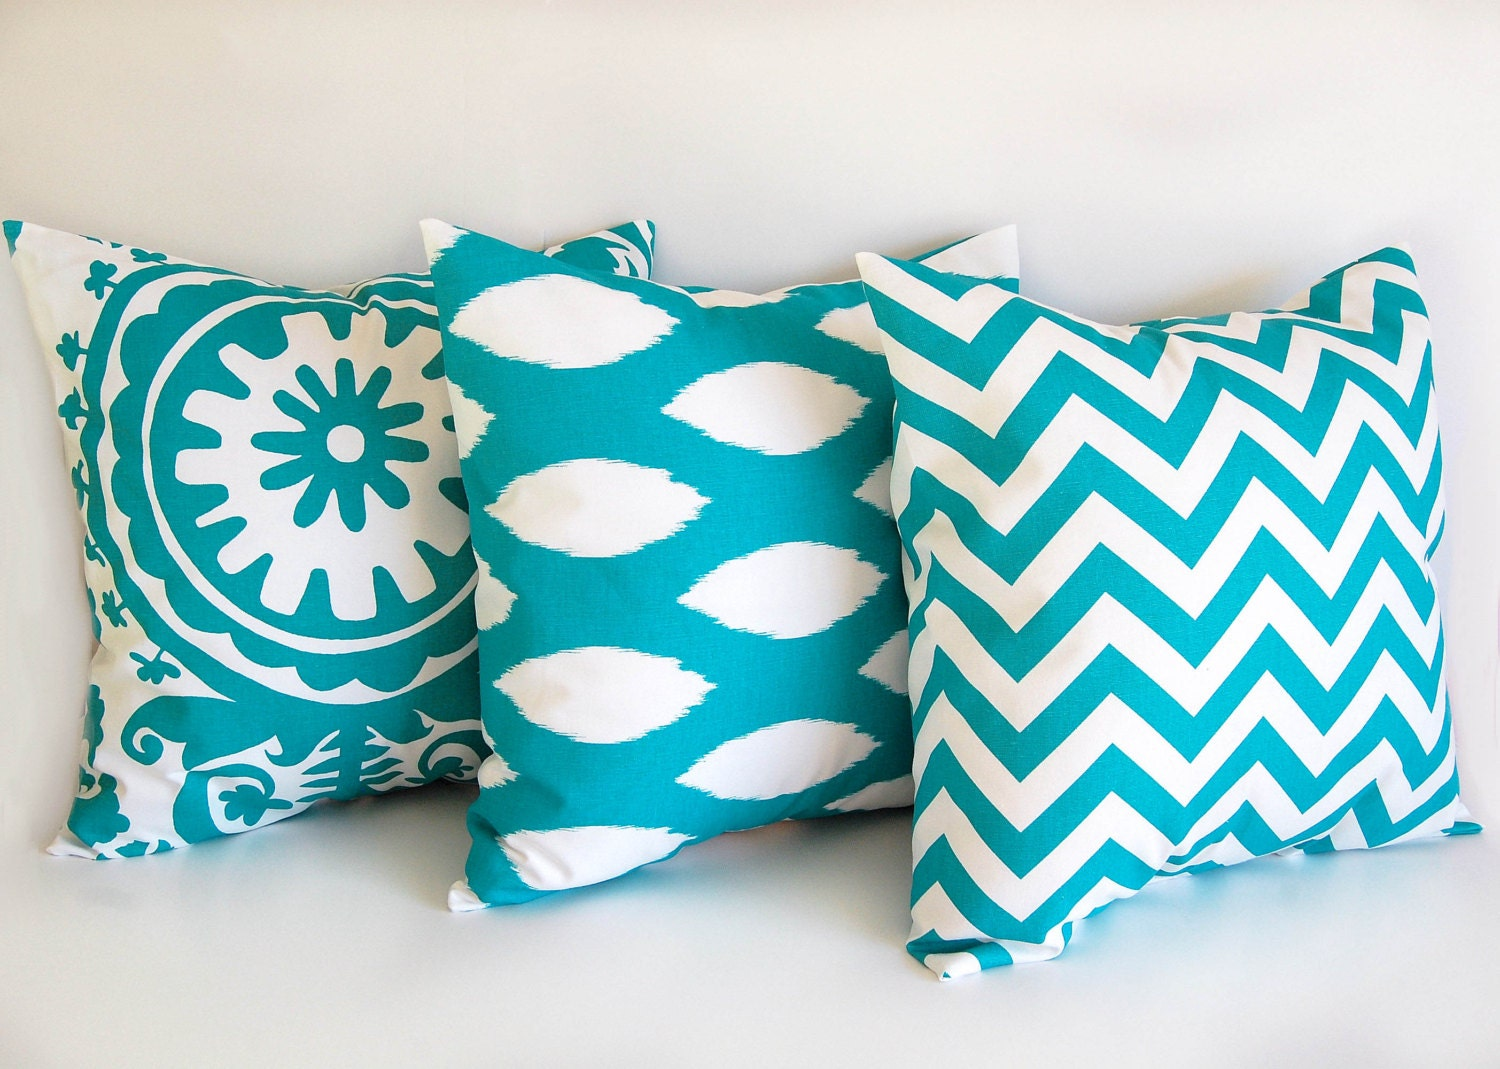 Turquoise Throw Pillows Covers : Turquoise throw pillow covers 20 x 20 cushion by ThePillowPeople